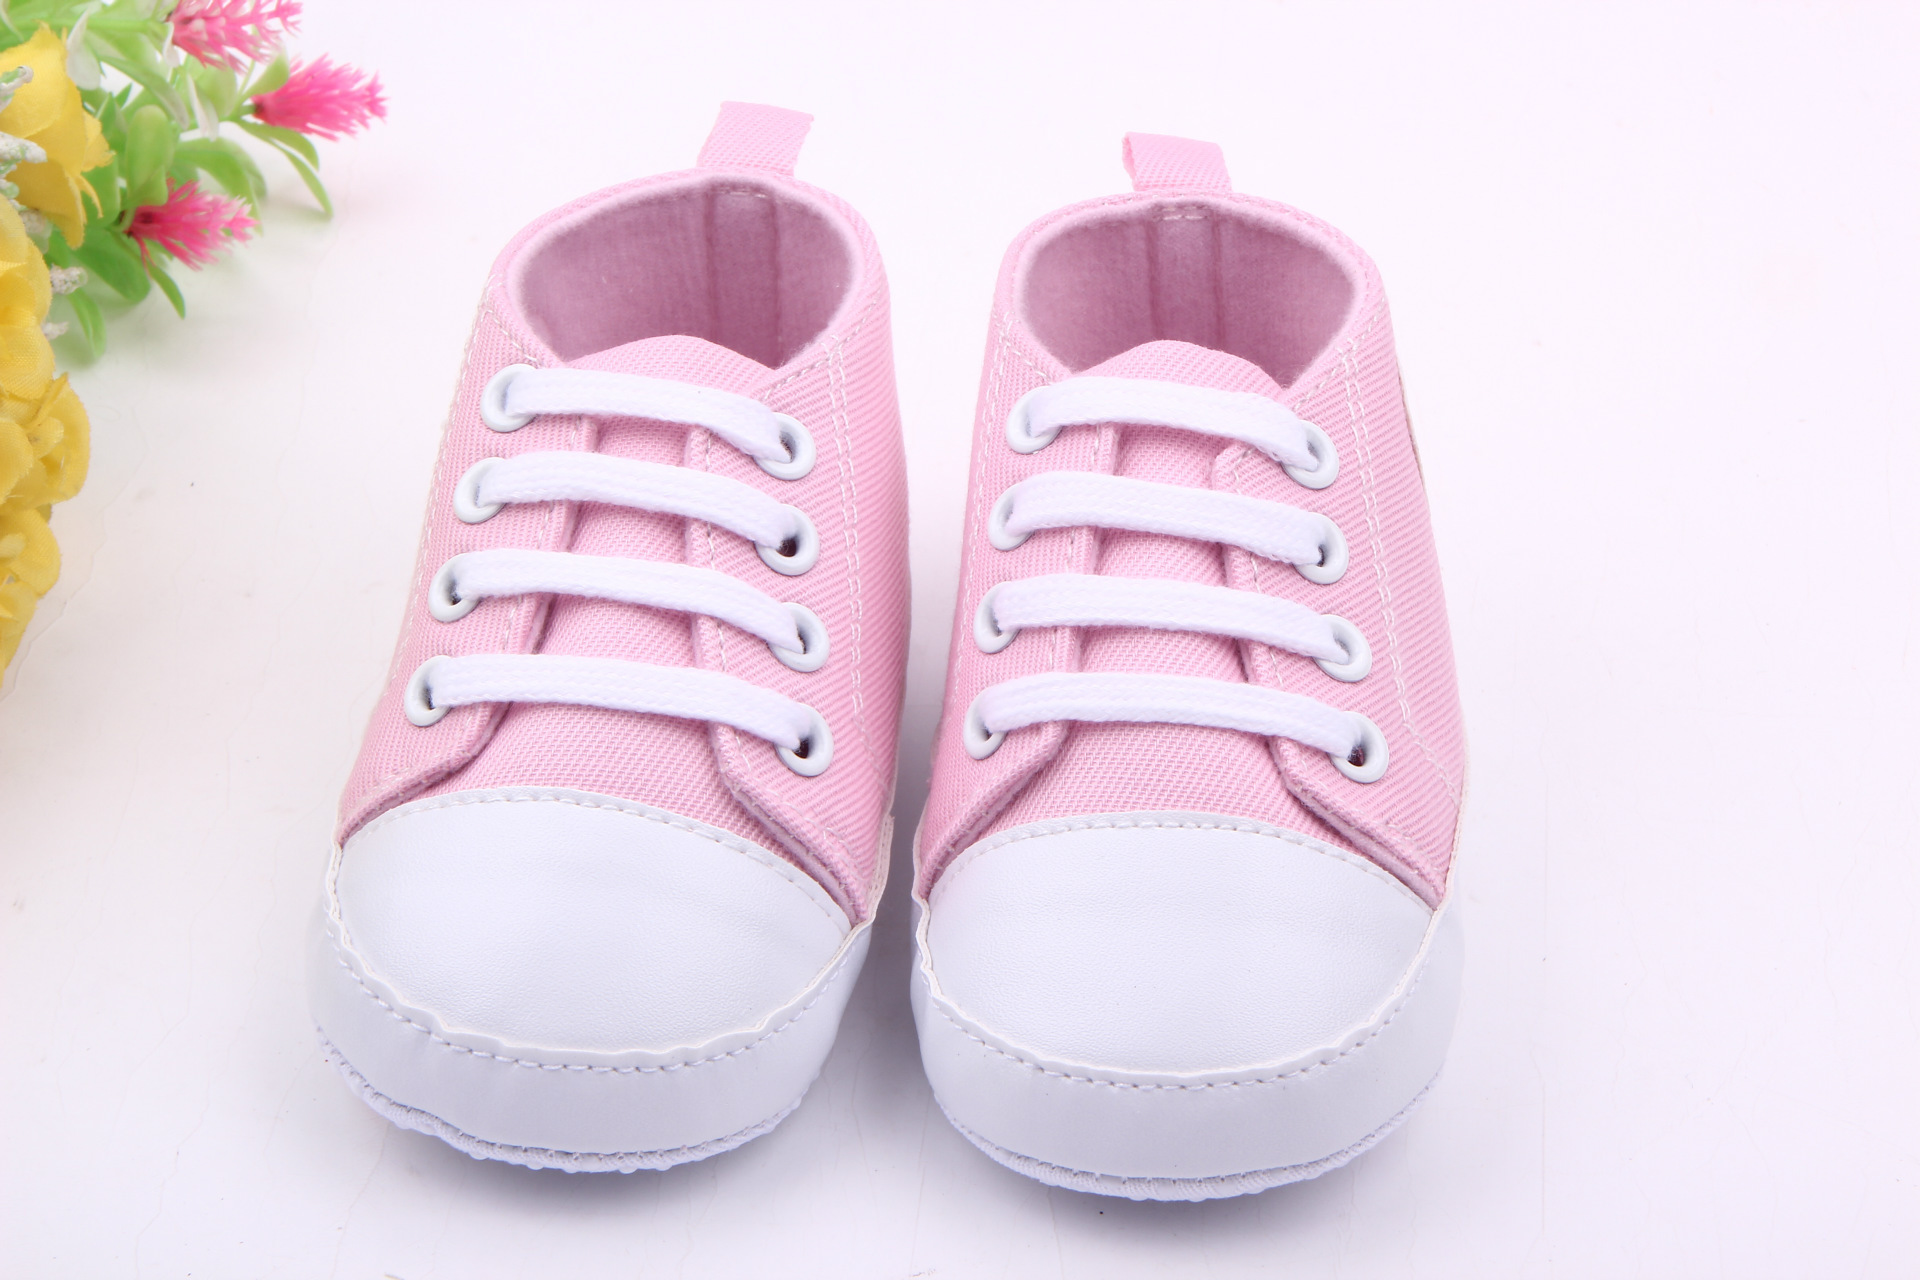 Baby Shoes Canvas 0 1 Year Old Kids Children Boy & Girl Sports Shoes